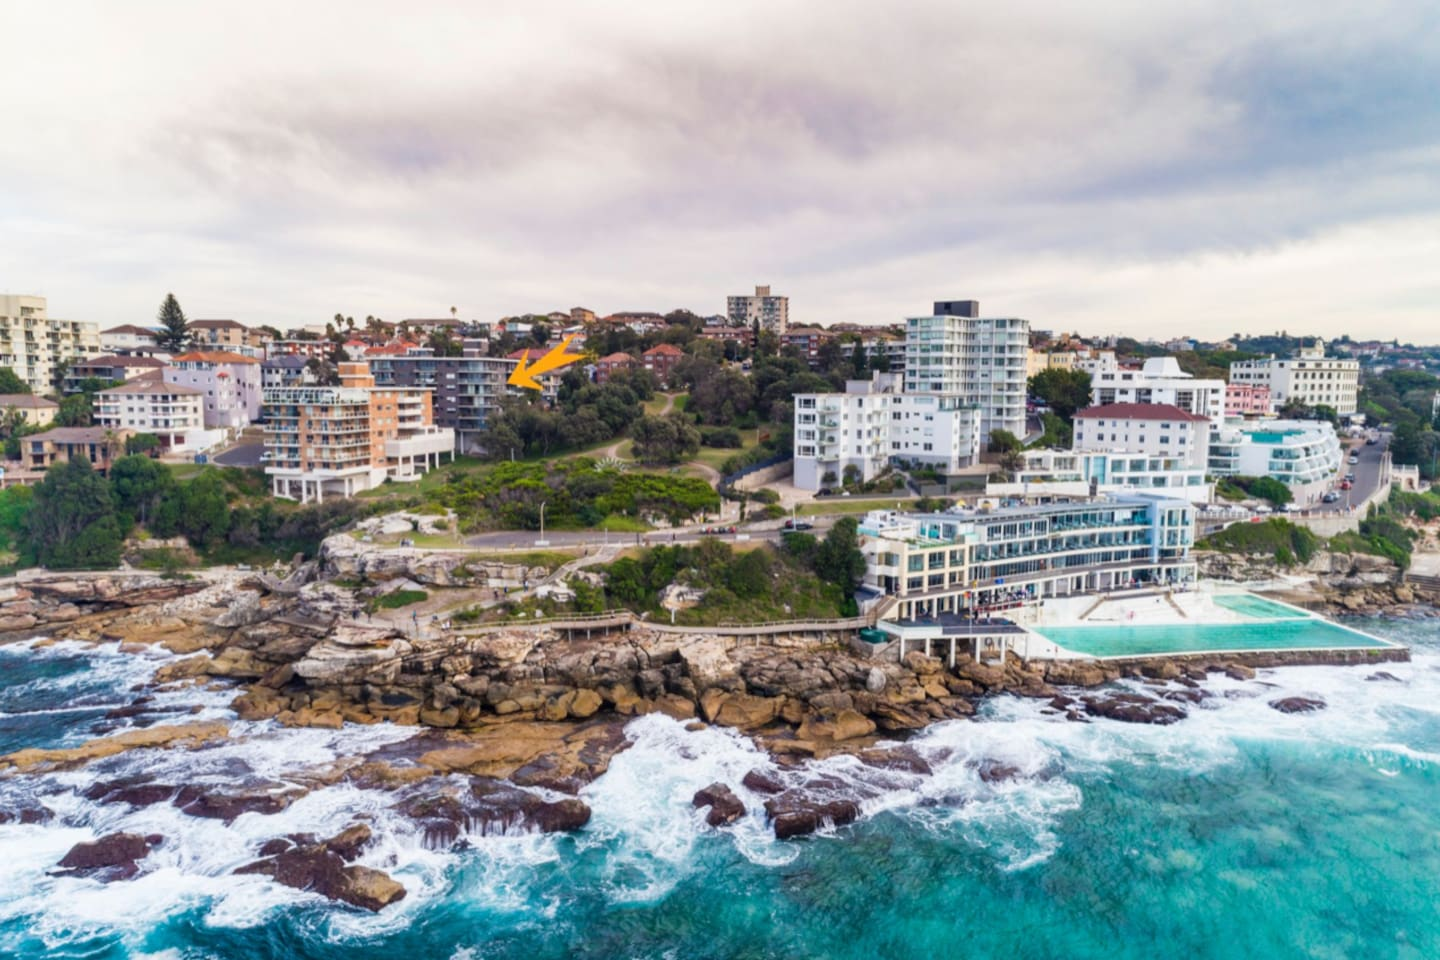 Thats our building. Our Unit is located at the South end of Bondi Beach along the coastal walk and moments to Bondi Icebergs. We look forward to hosting your Bondi Adventure.